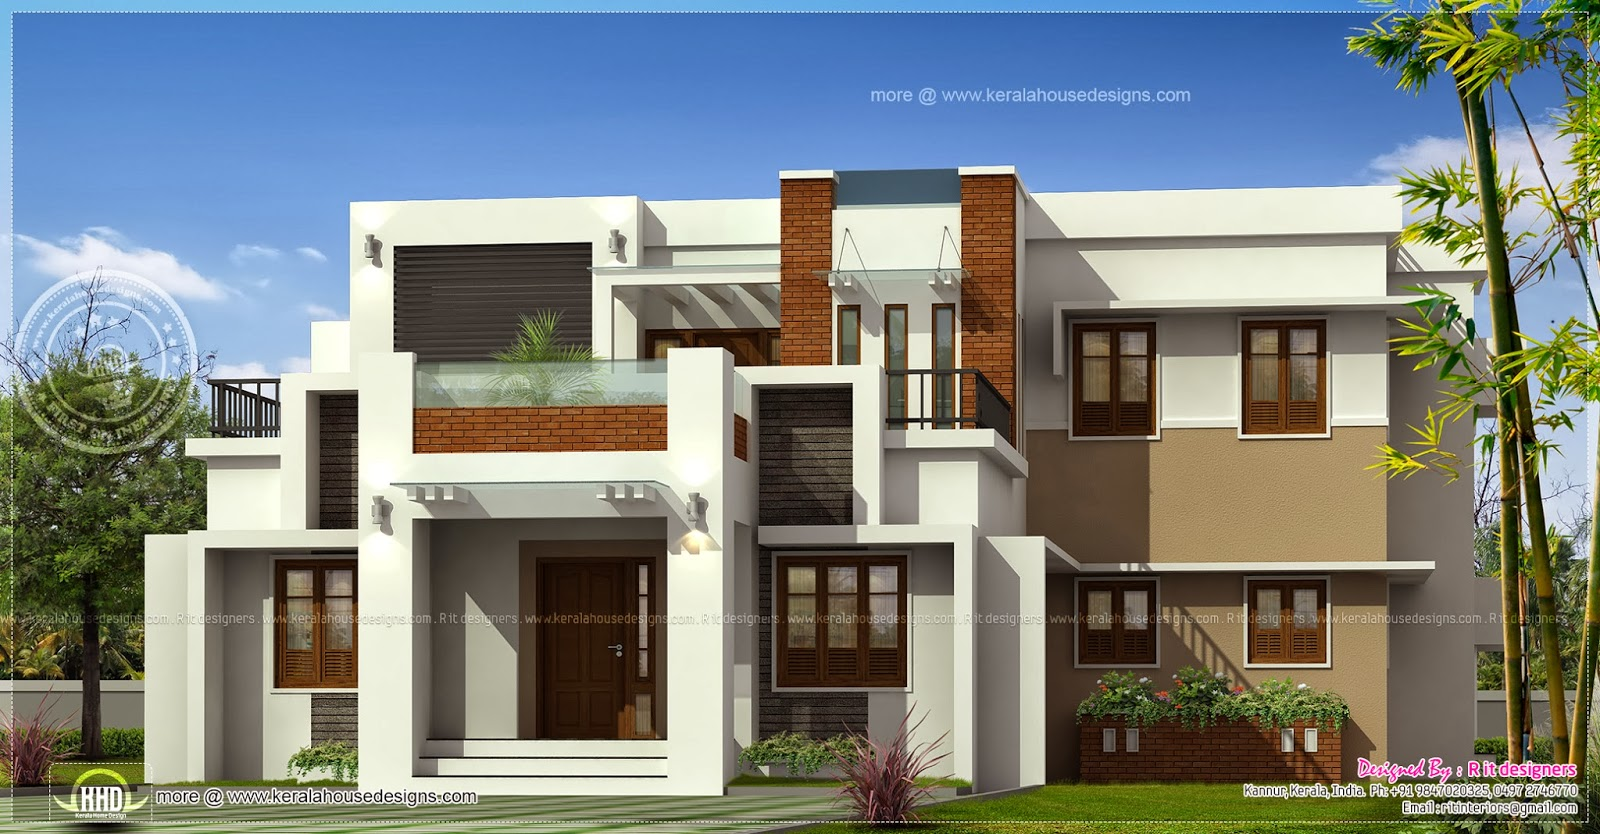 Modern contemporary luxury home design kerala home design and floor plans for Contemporary modern home designs